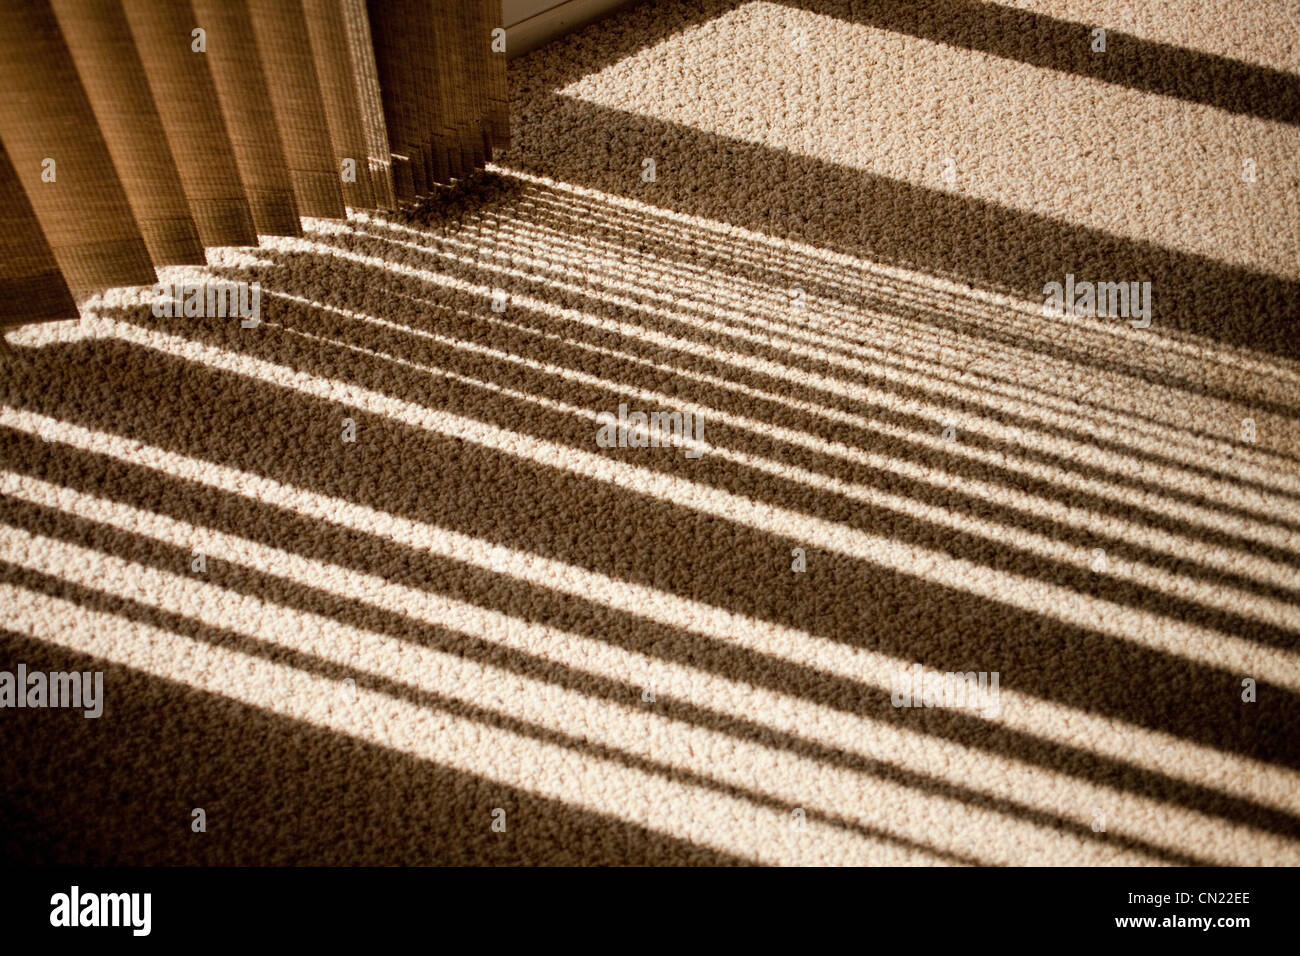 Window blinds casting shadow on carpet - Stock Image